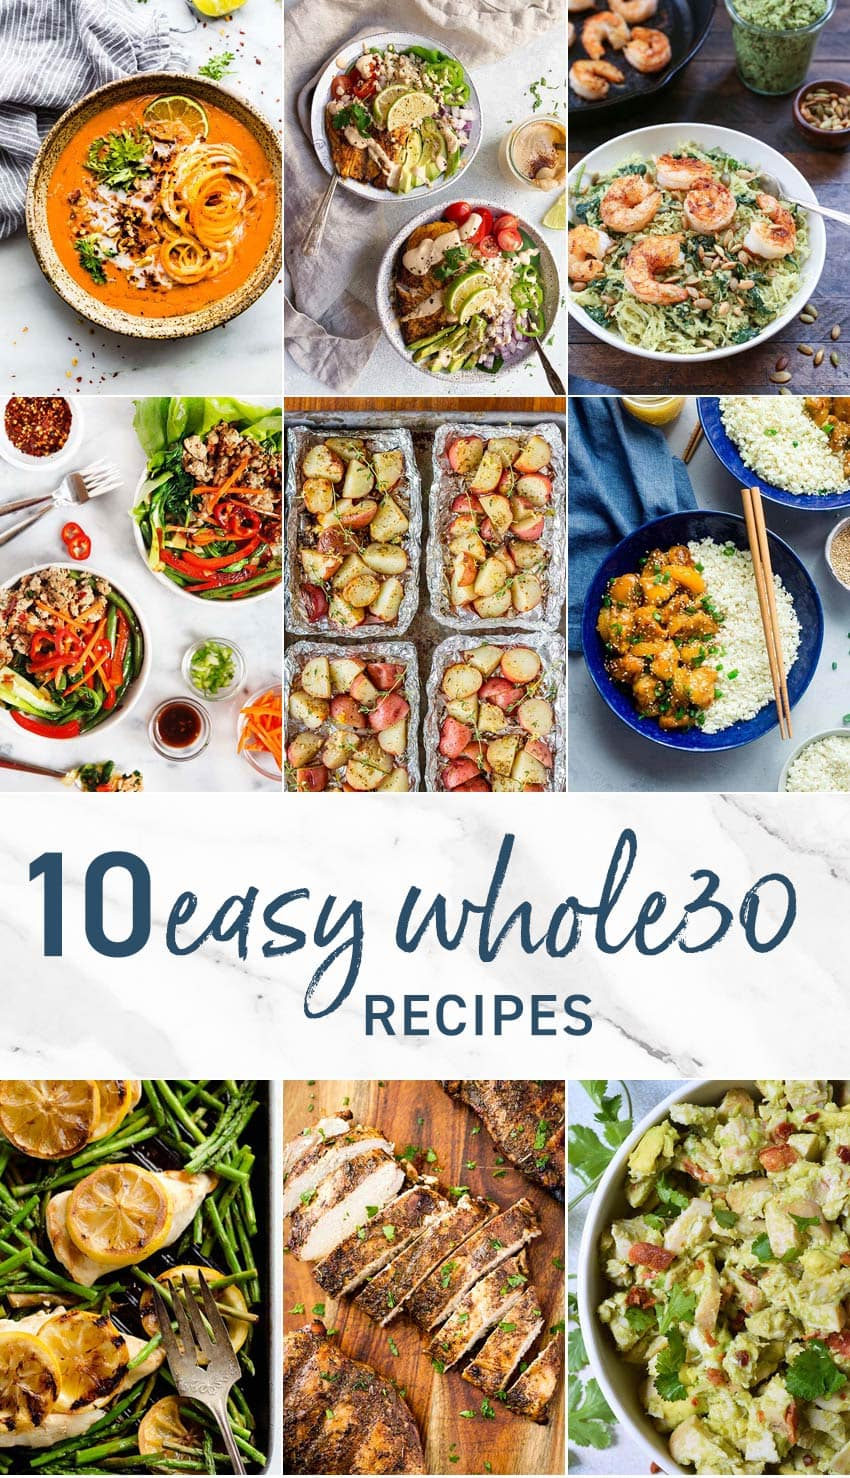 Whole 30 Recipes don't have to be difficult! Whole30 Recipes can be simple, DELICIOUS, quick, and easy. We have compiled 10 of the best Easy Whole30 Recipes we love most for flavor and ease.